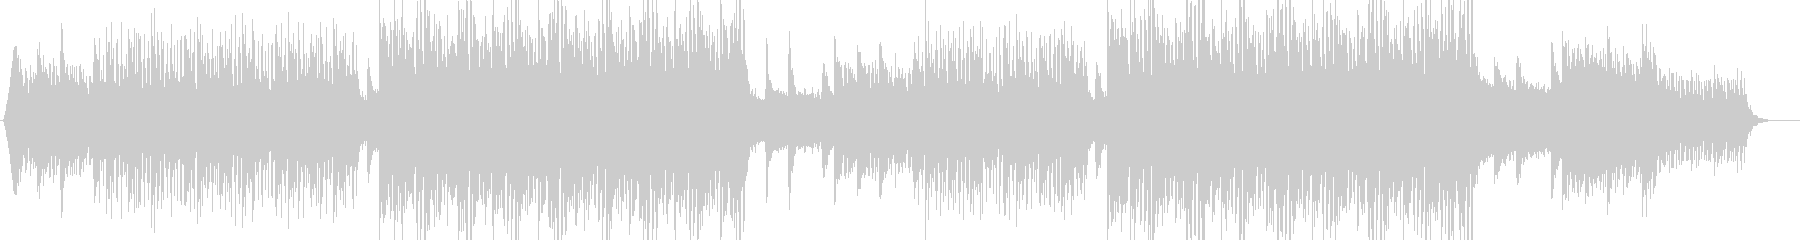 A song with a fashionable and clear image's unreproduced waveform